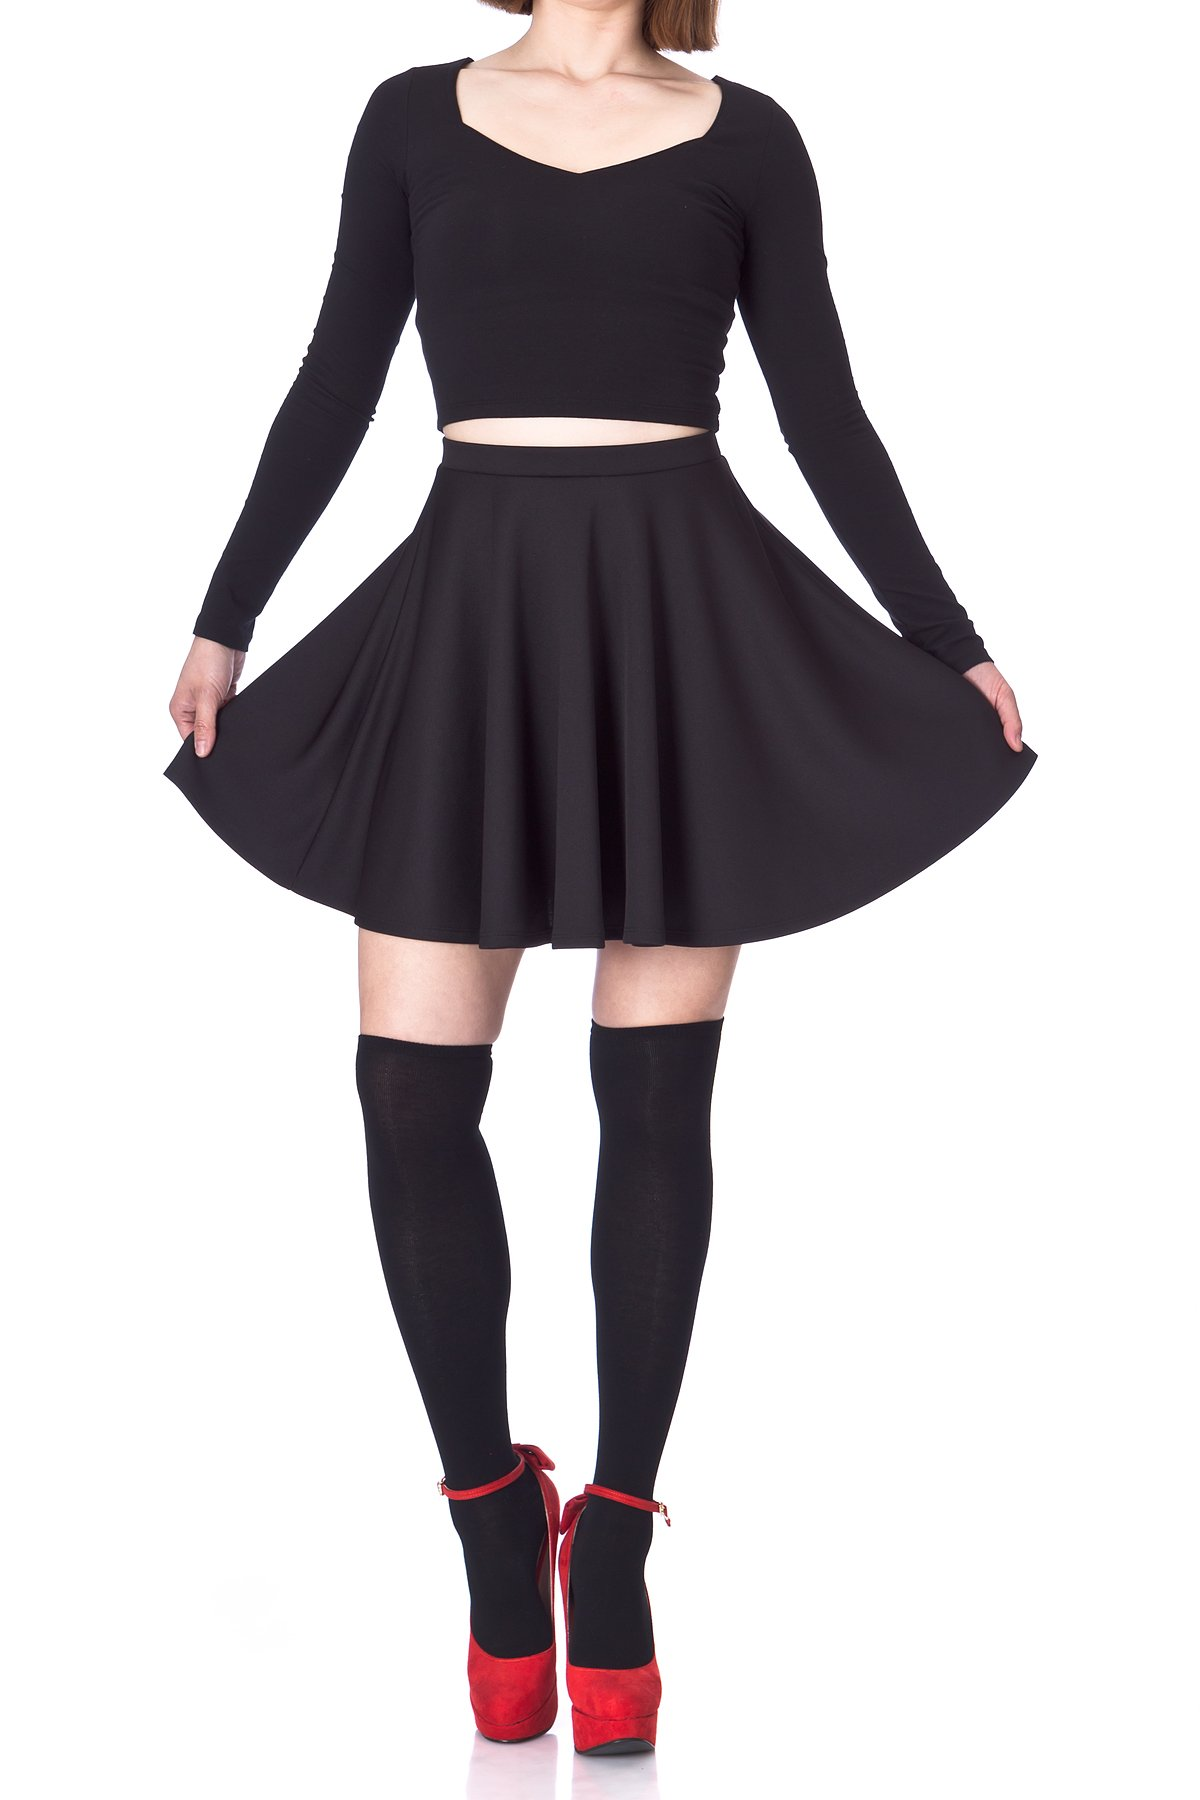 Flouncy High Waist A line Full Flared Circle Swing Dance Party Casual Skater Short Mini Skirt Black 02